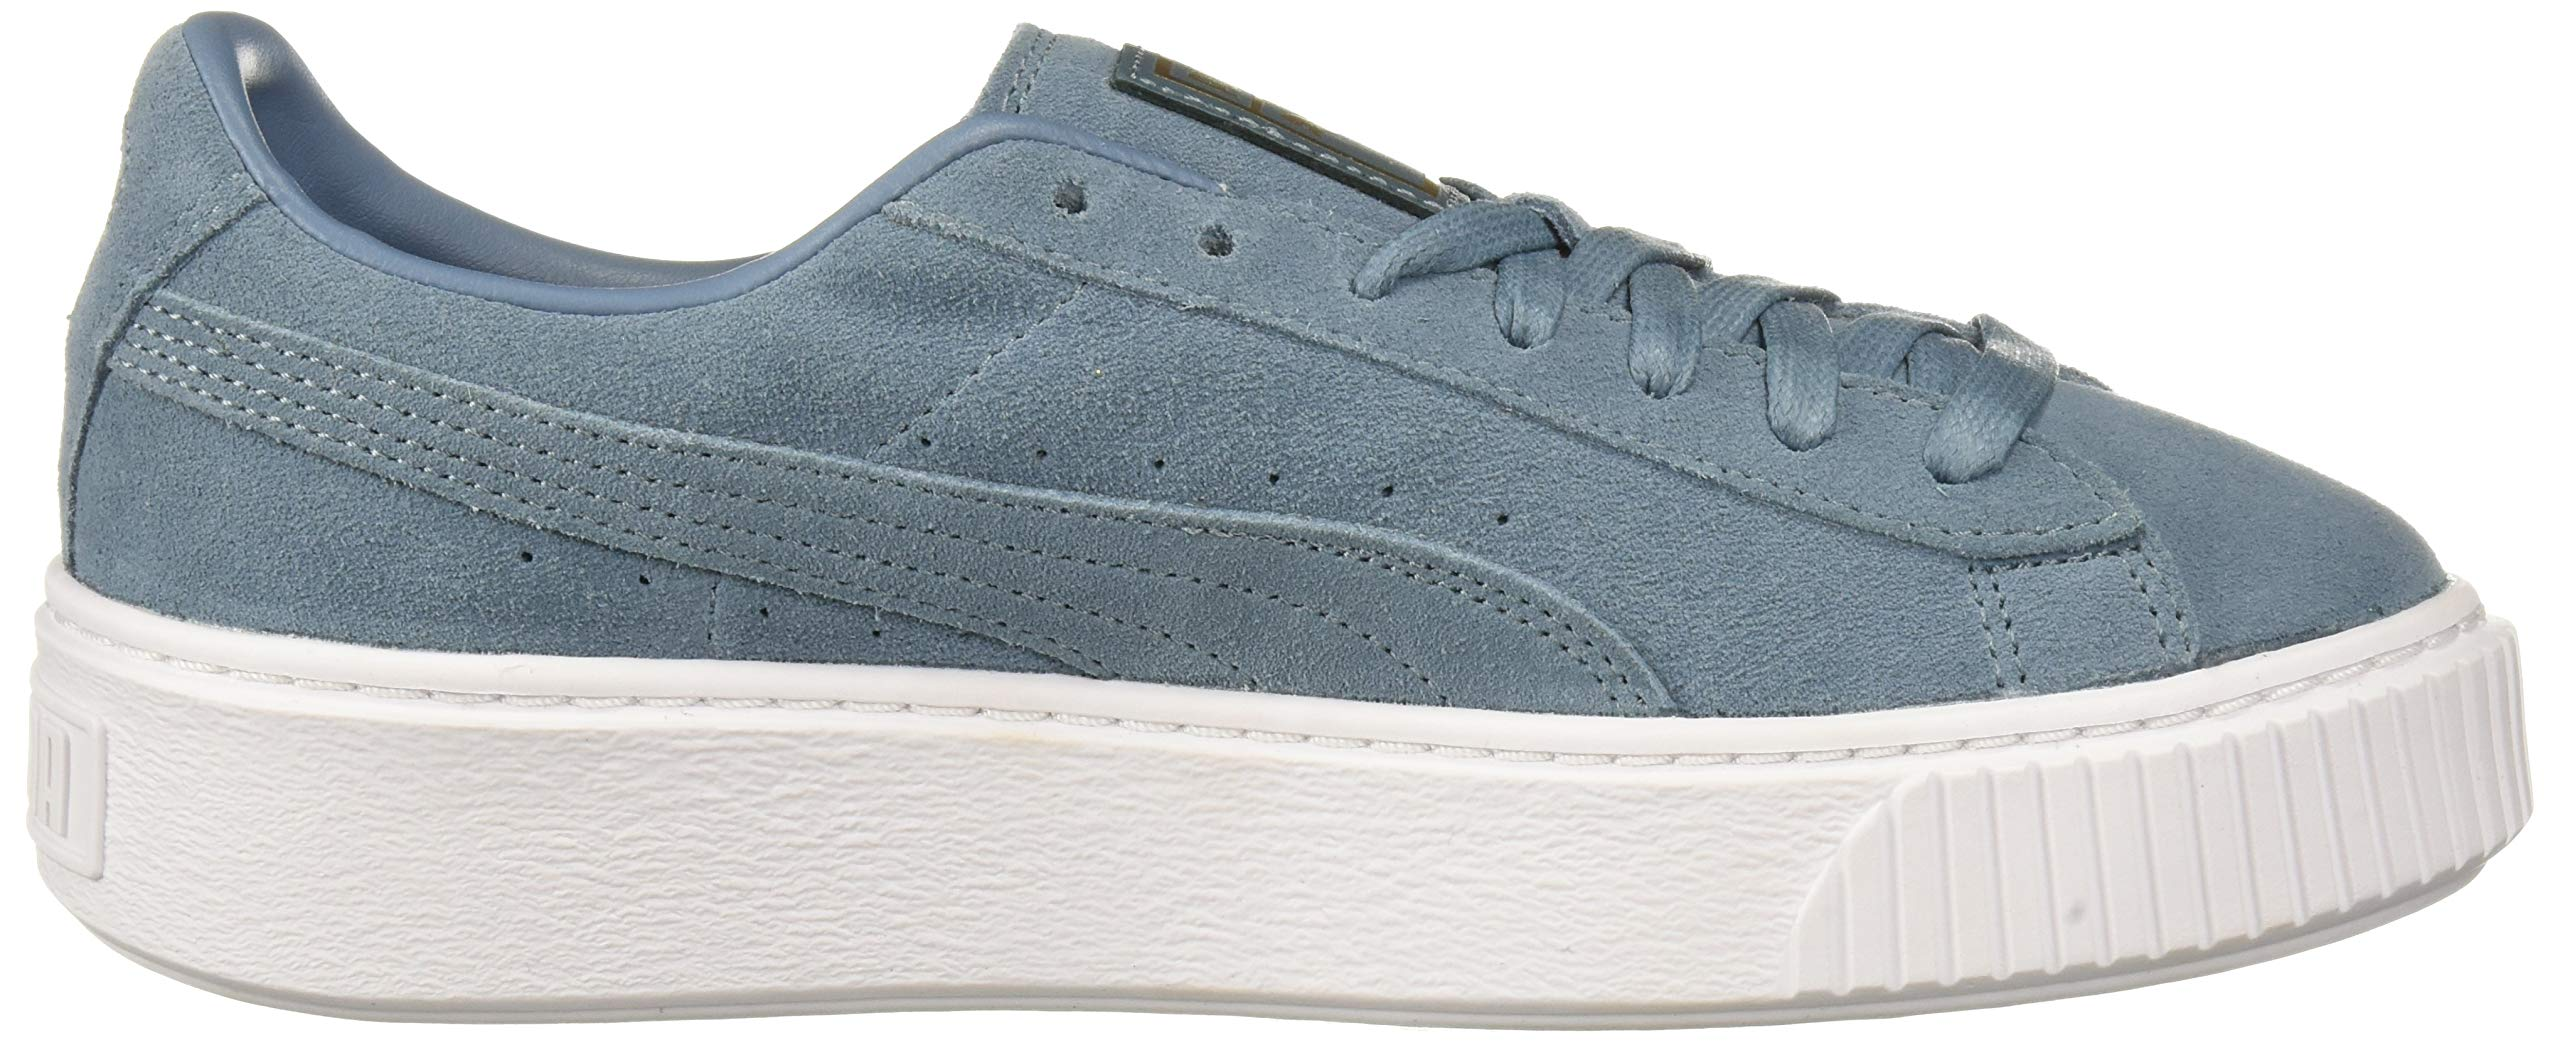 Details about PUMA Women's Suede Platform Sneaker, Bluestone Tea Choose SZcolor